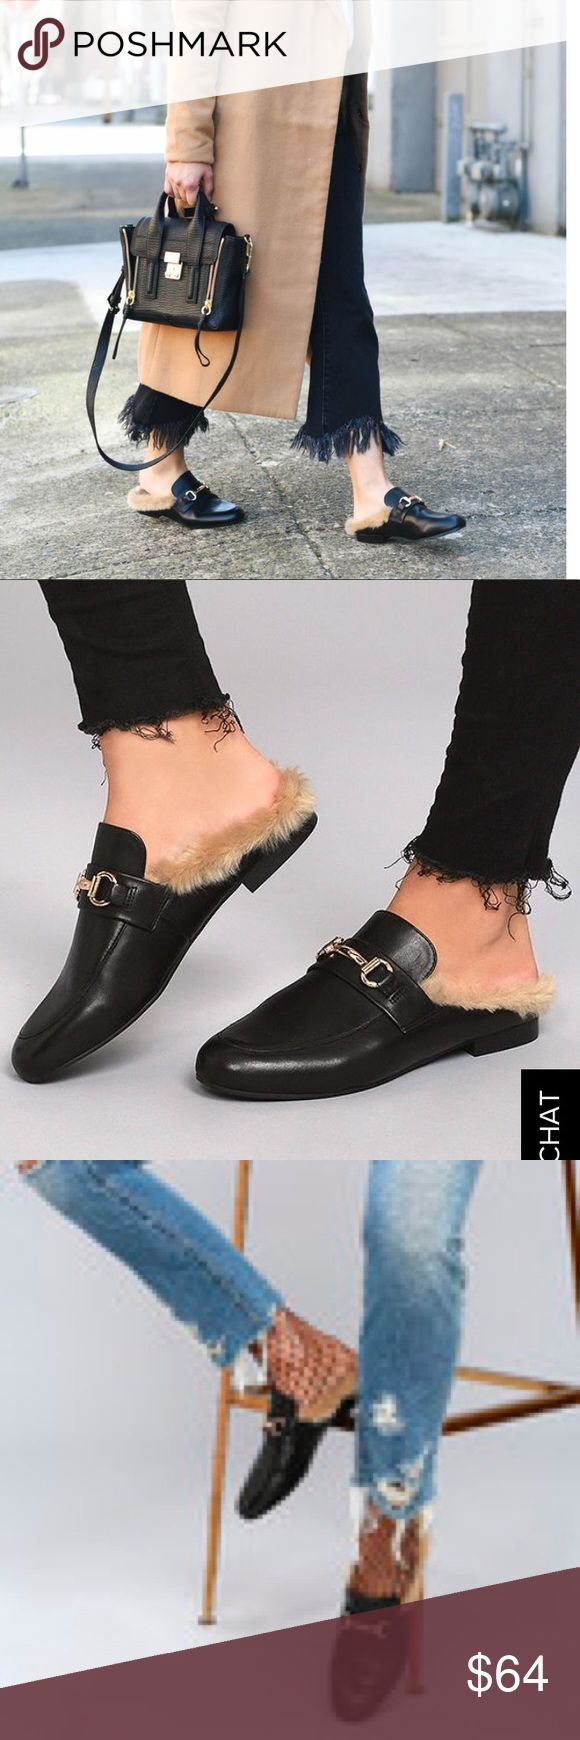 Steve Madden Women's Jill Loafers Slip Ons Lightly used Loafers by Steve Madden!! Still has a lot more to offer! This elegant loafer-mule silhouette with faux fur-lined interior, JILL epitomizes luxury. Offers are welcomed😊 Steve Madden Shoes Flats & Loafers